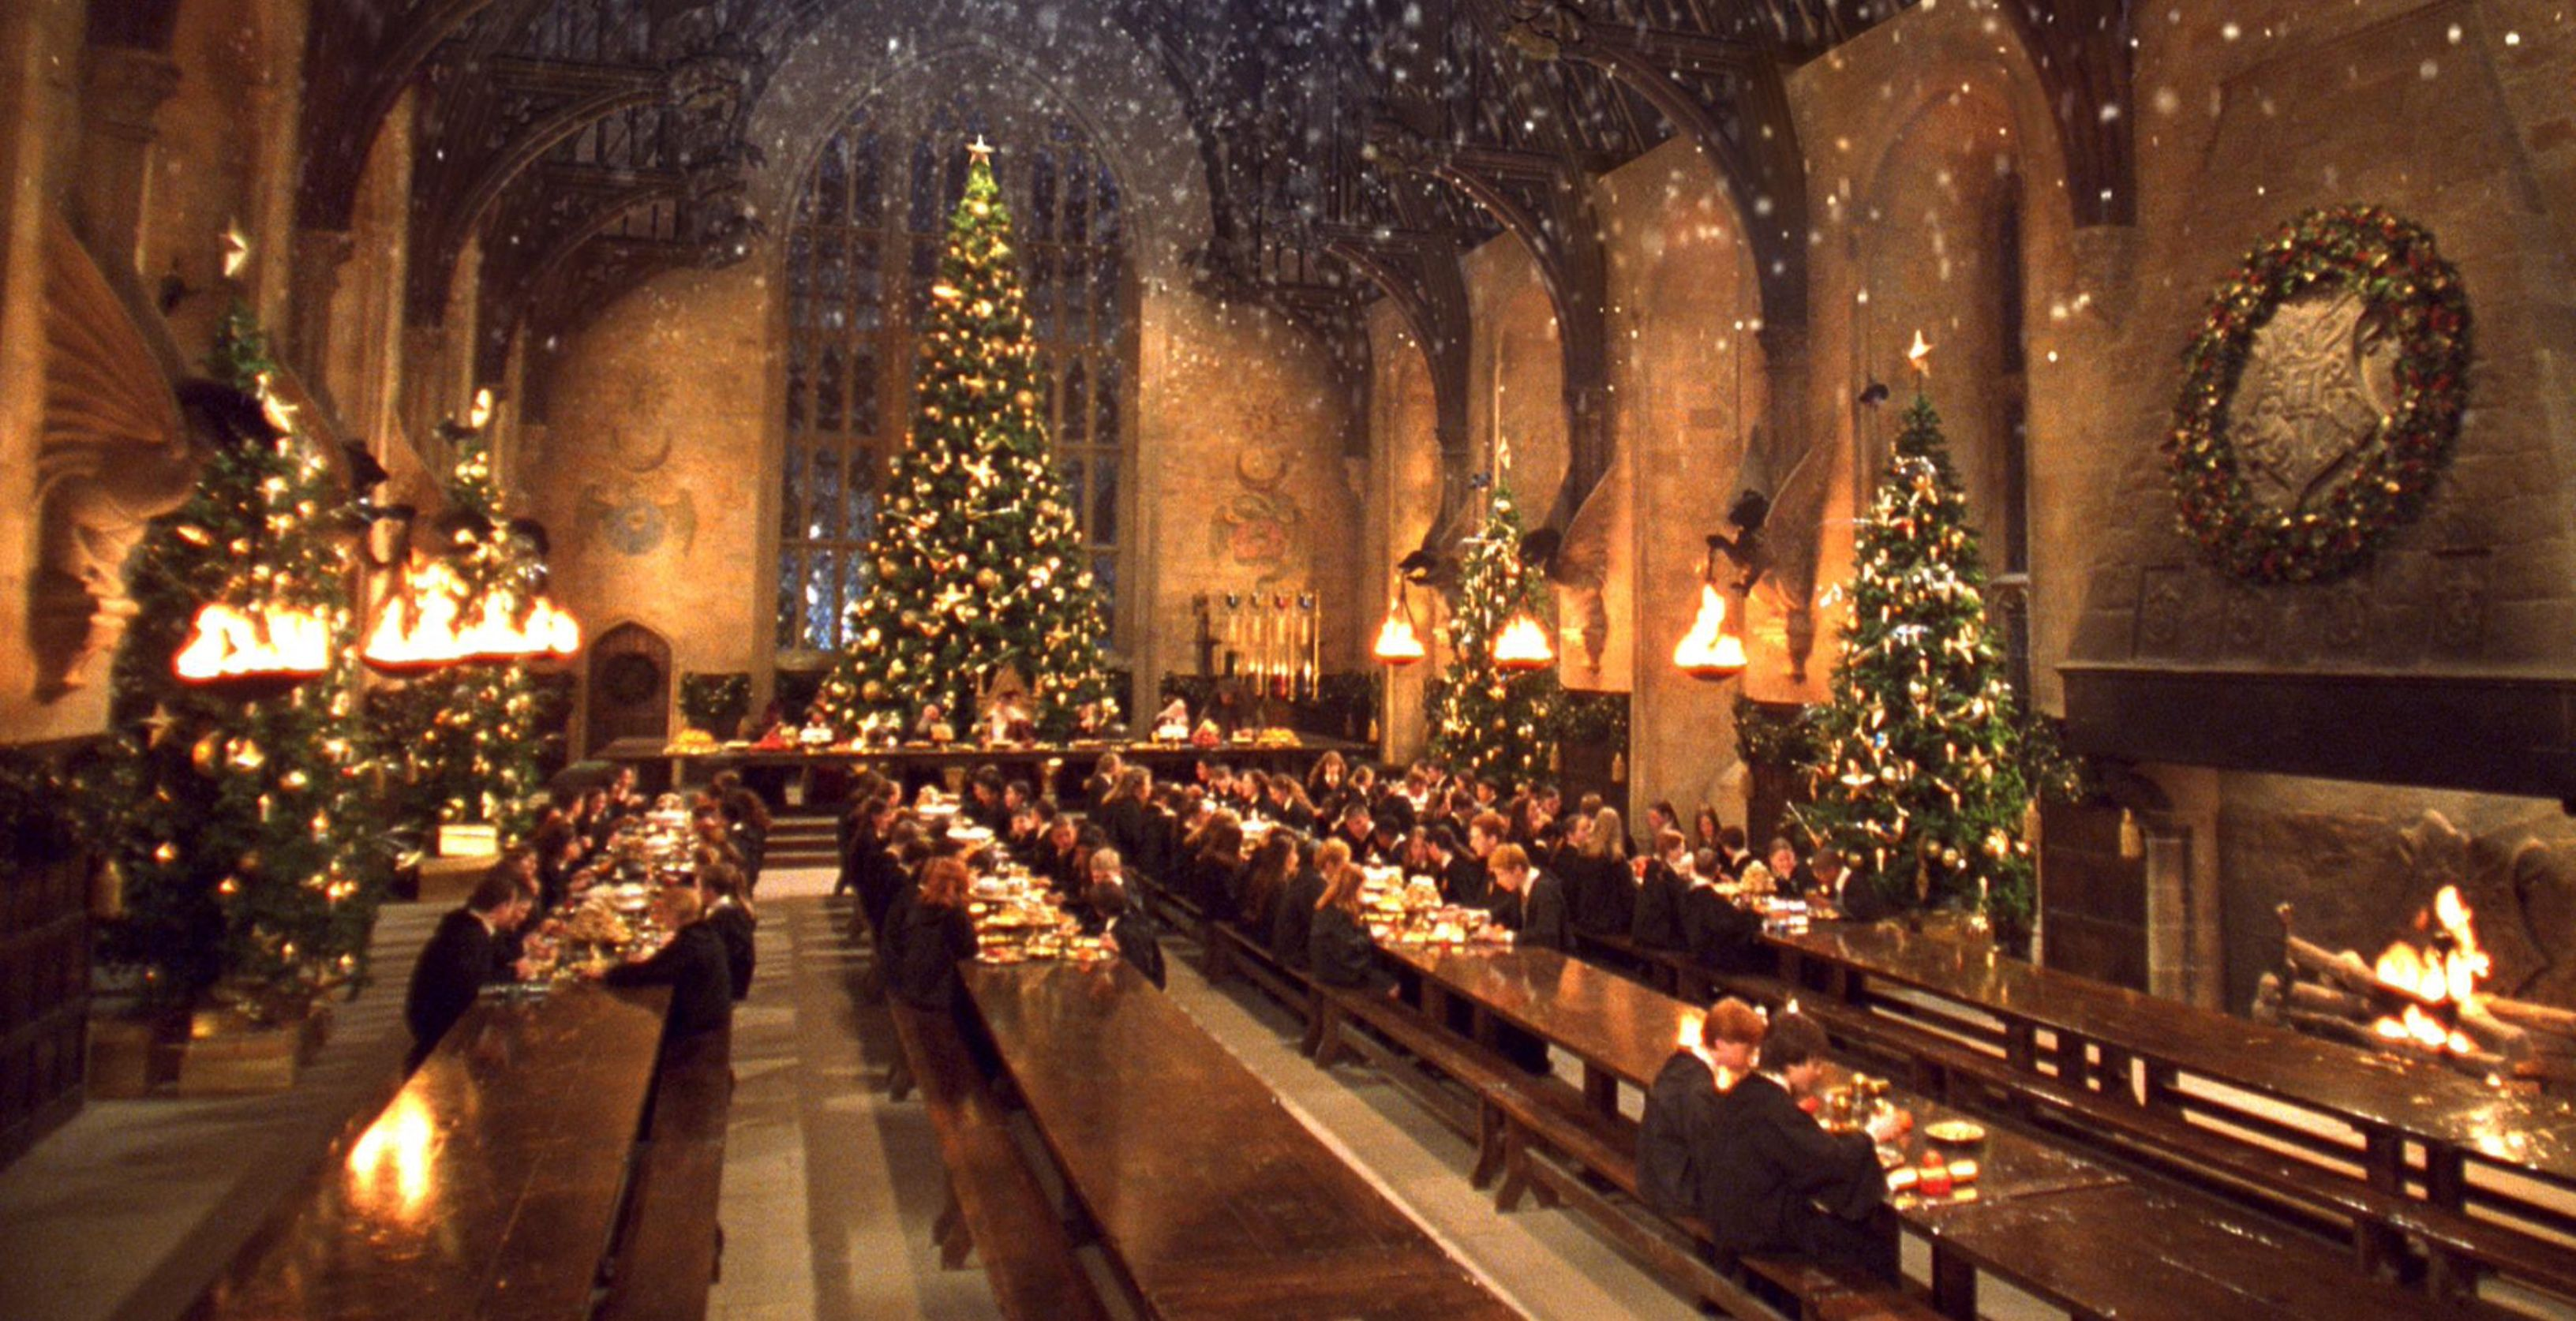 Enter For Your Chance To Win A Trip To The Making Of Harry Potter Warner Bros Studio Tour Chip And Company Hogwarts Christmas Harry Potter Christmas Scene Harry Potter Warner Bros